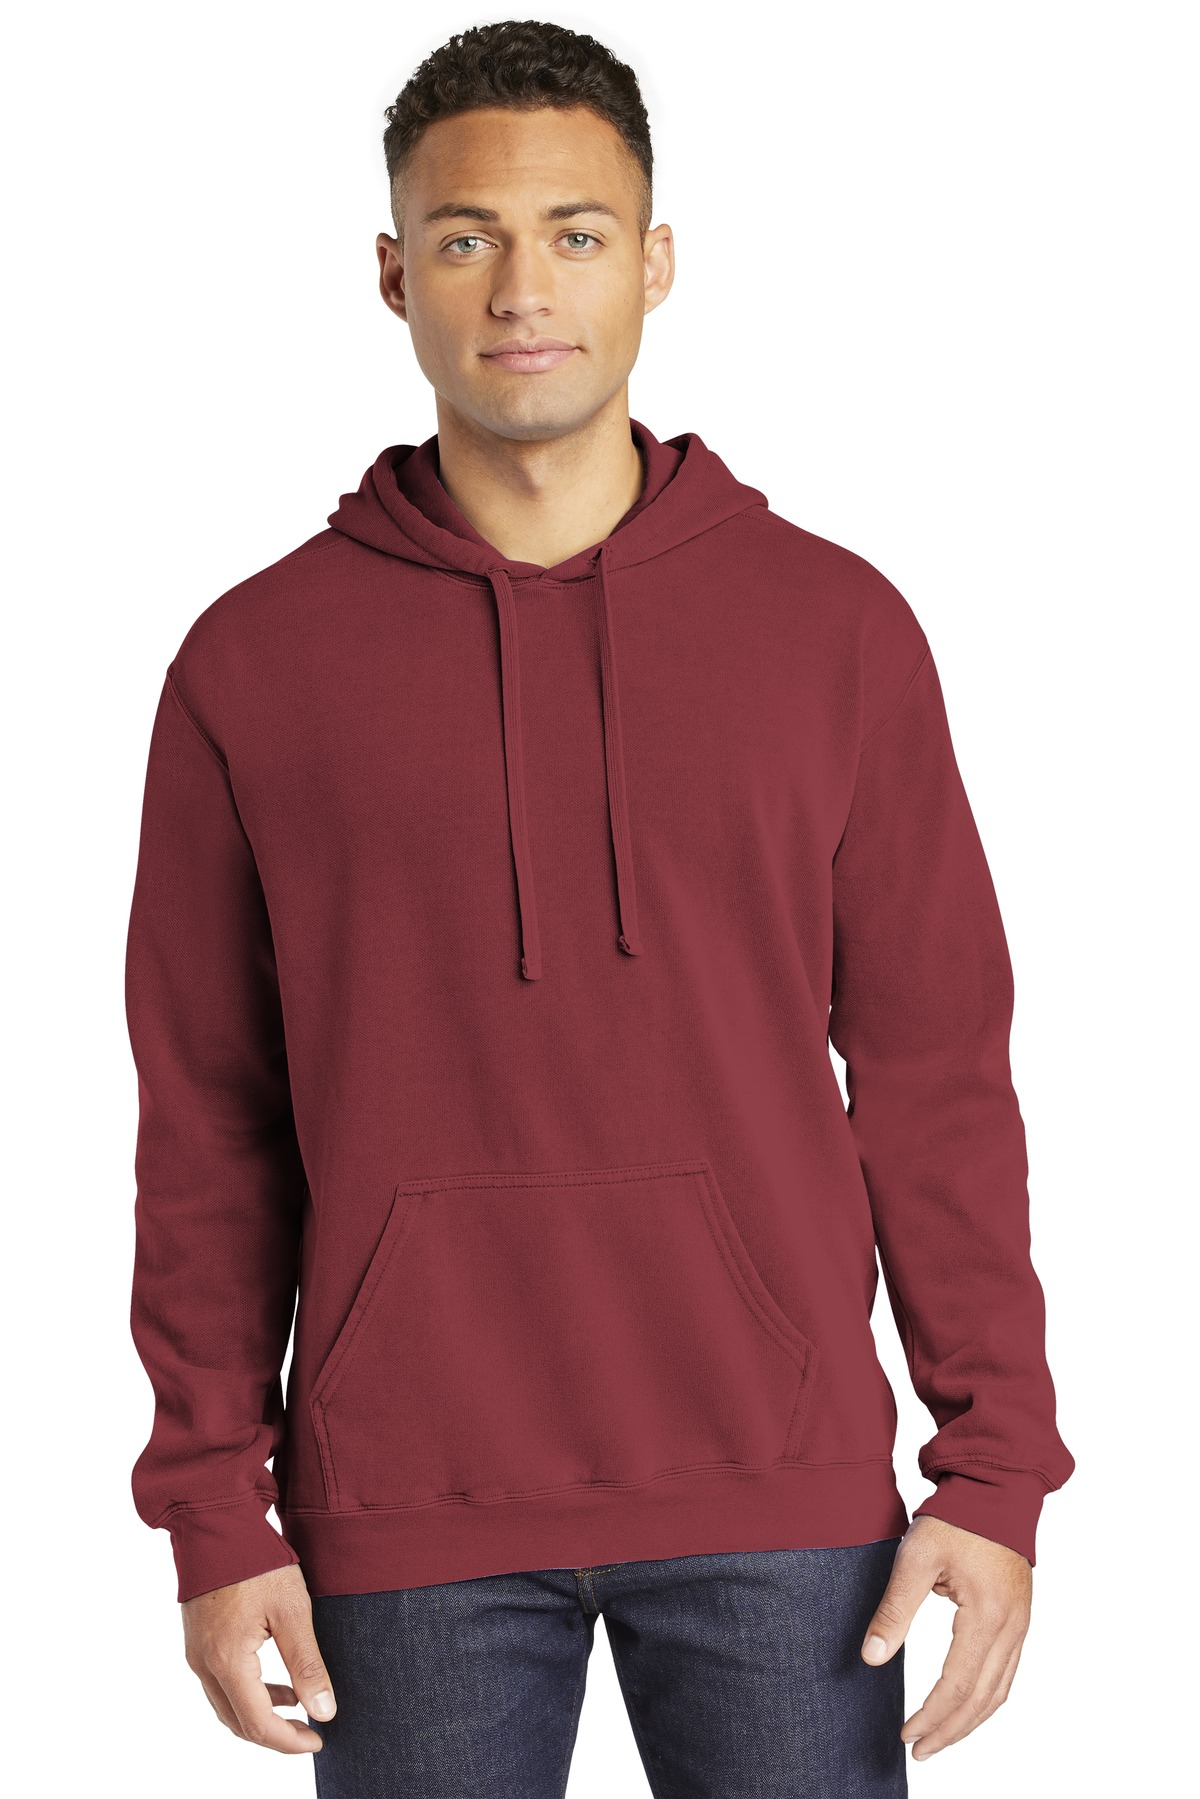 COMFORT COLORS  ®  Ring Spun Hooded Sweatshirt. 1567 - Crimson